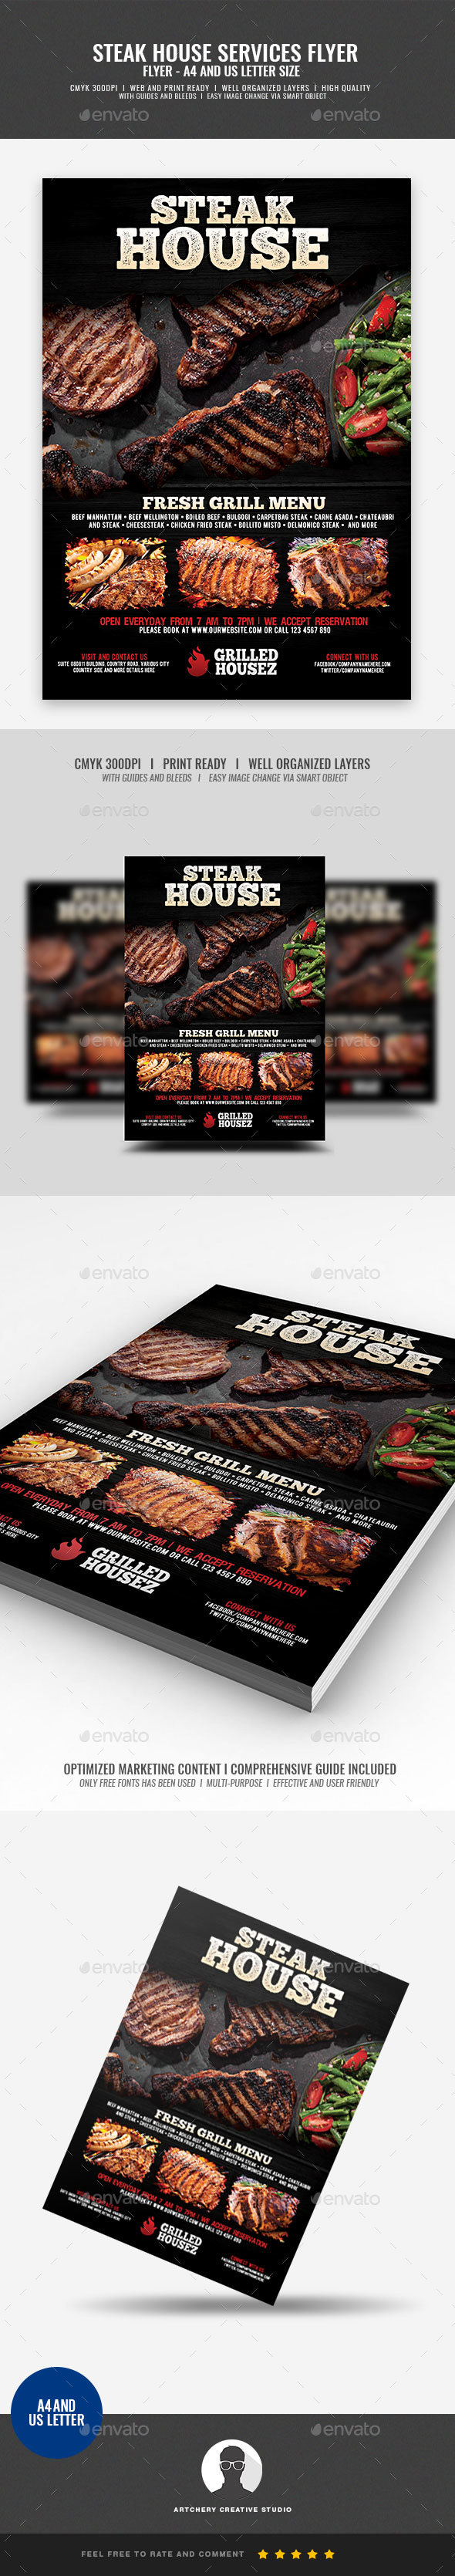 Steakhouse and Grill Flyer - Restaurant Flyers